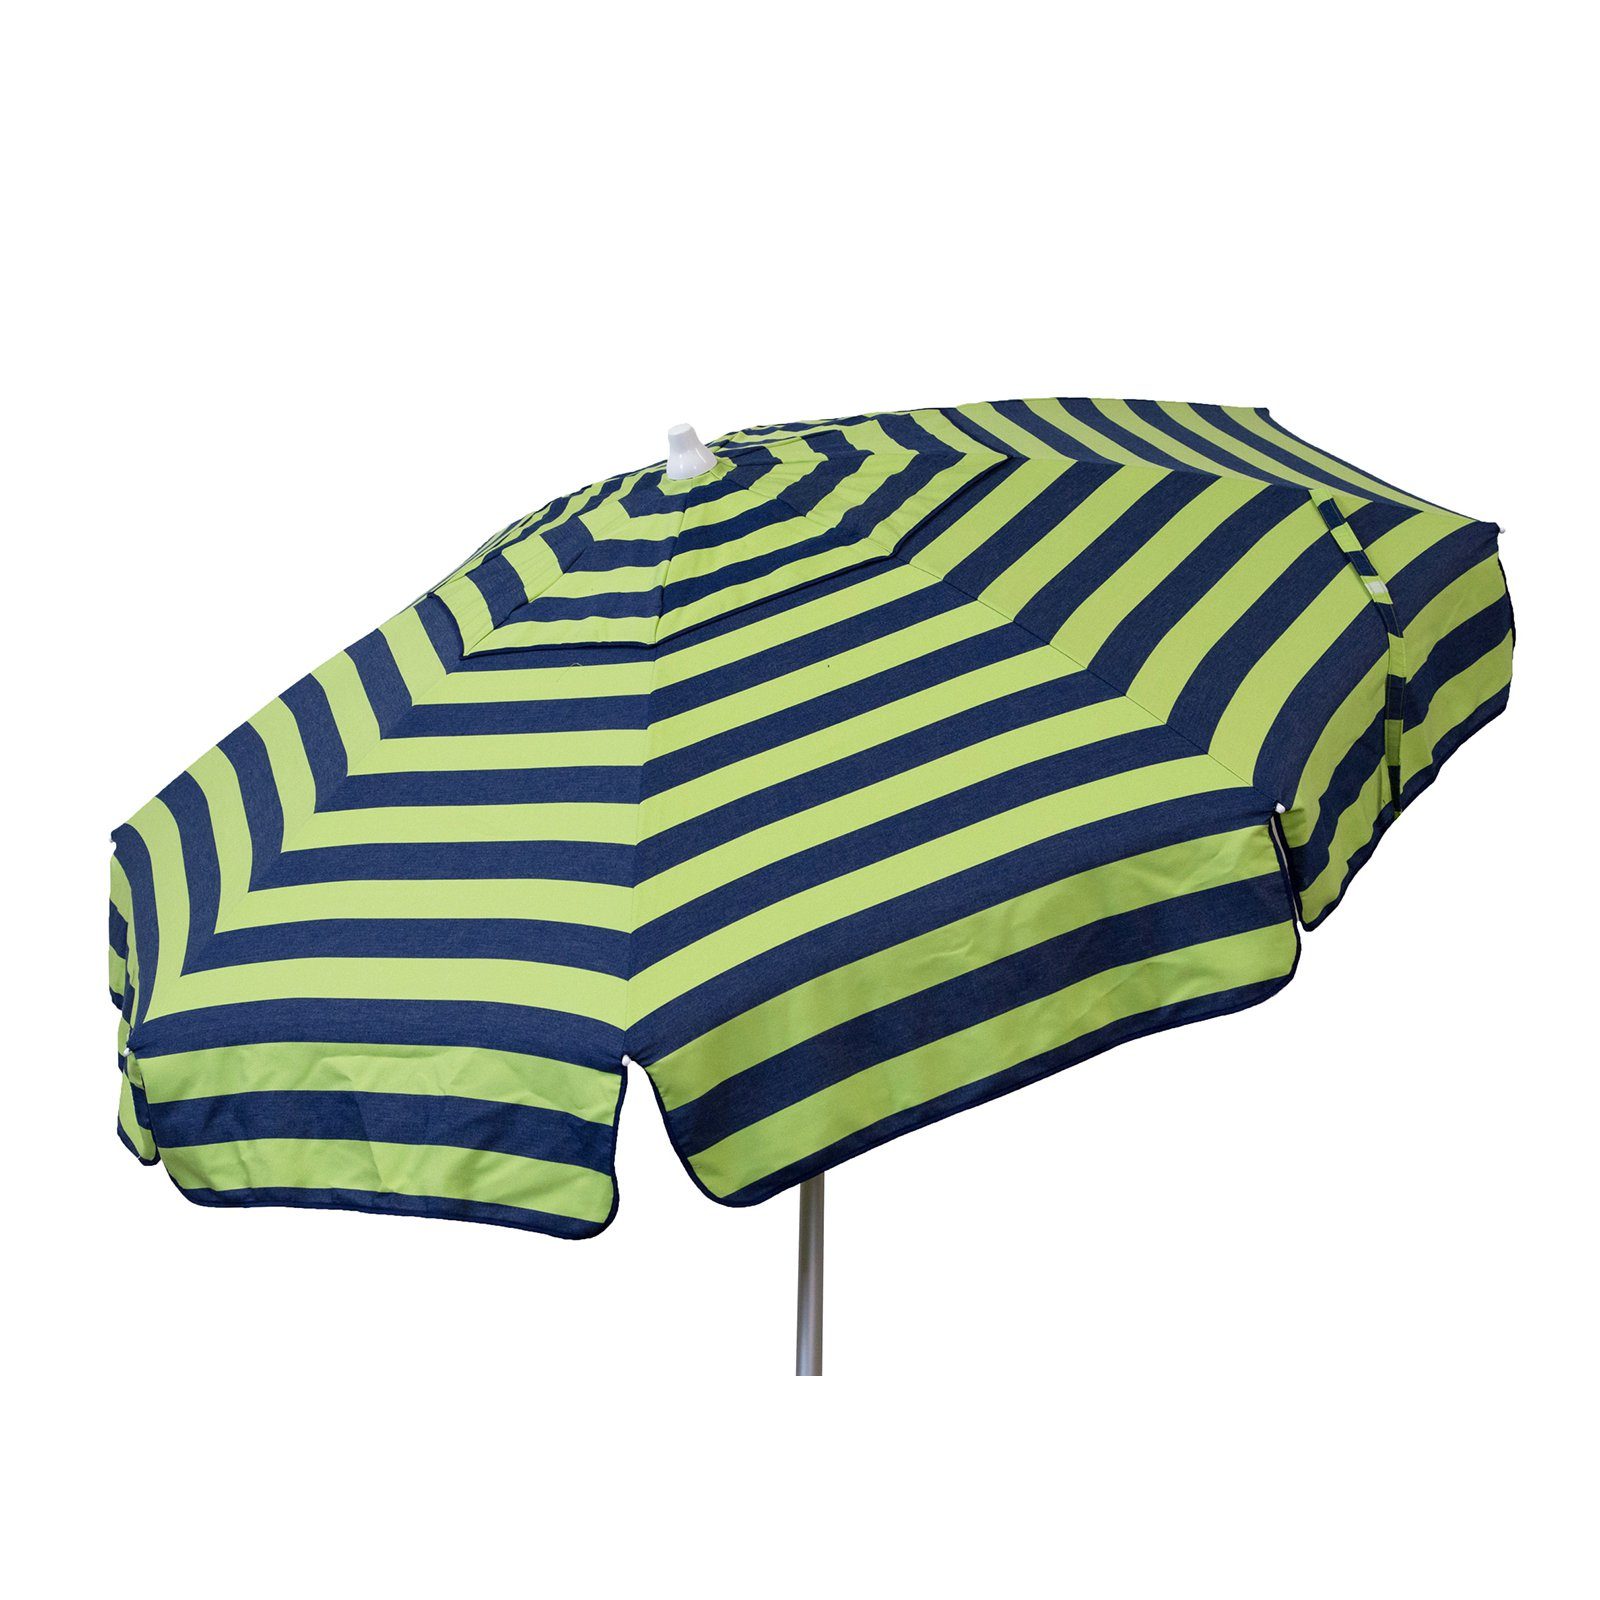 DestinationGear 6' Patio Umbrella Navy and Lime Stripe